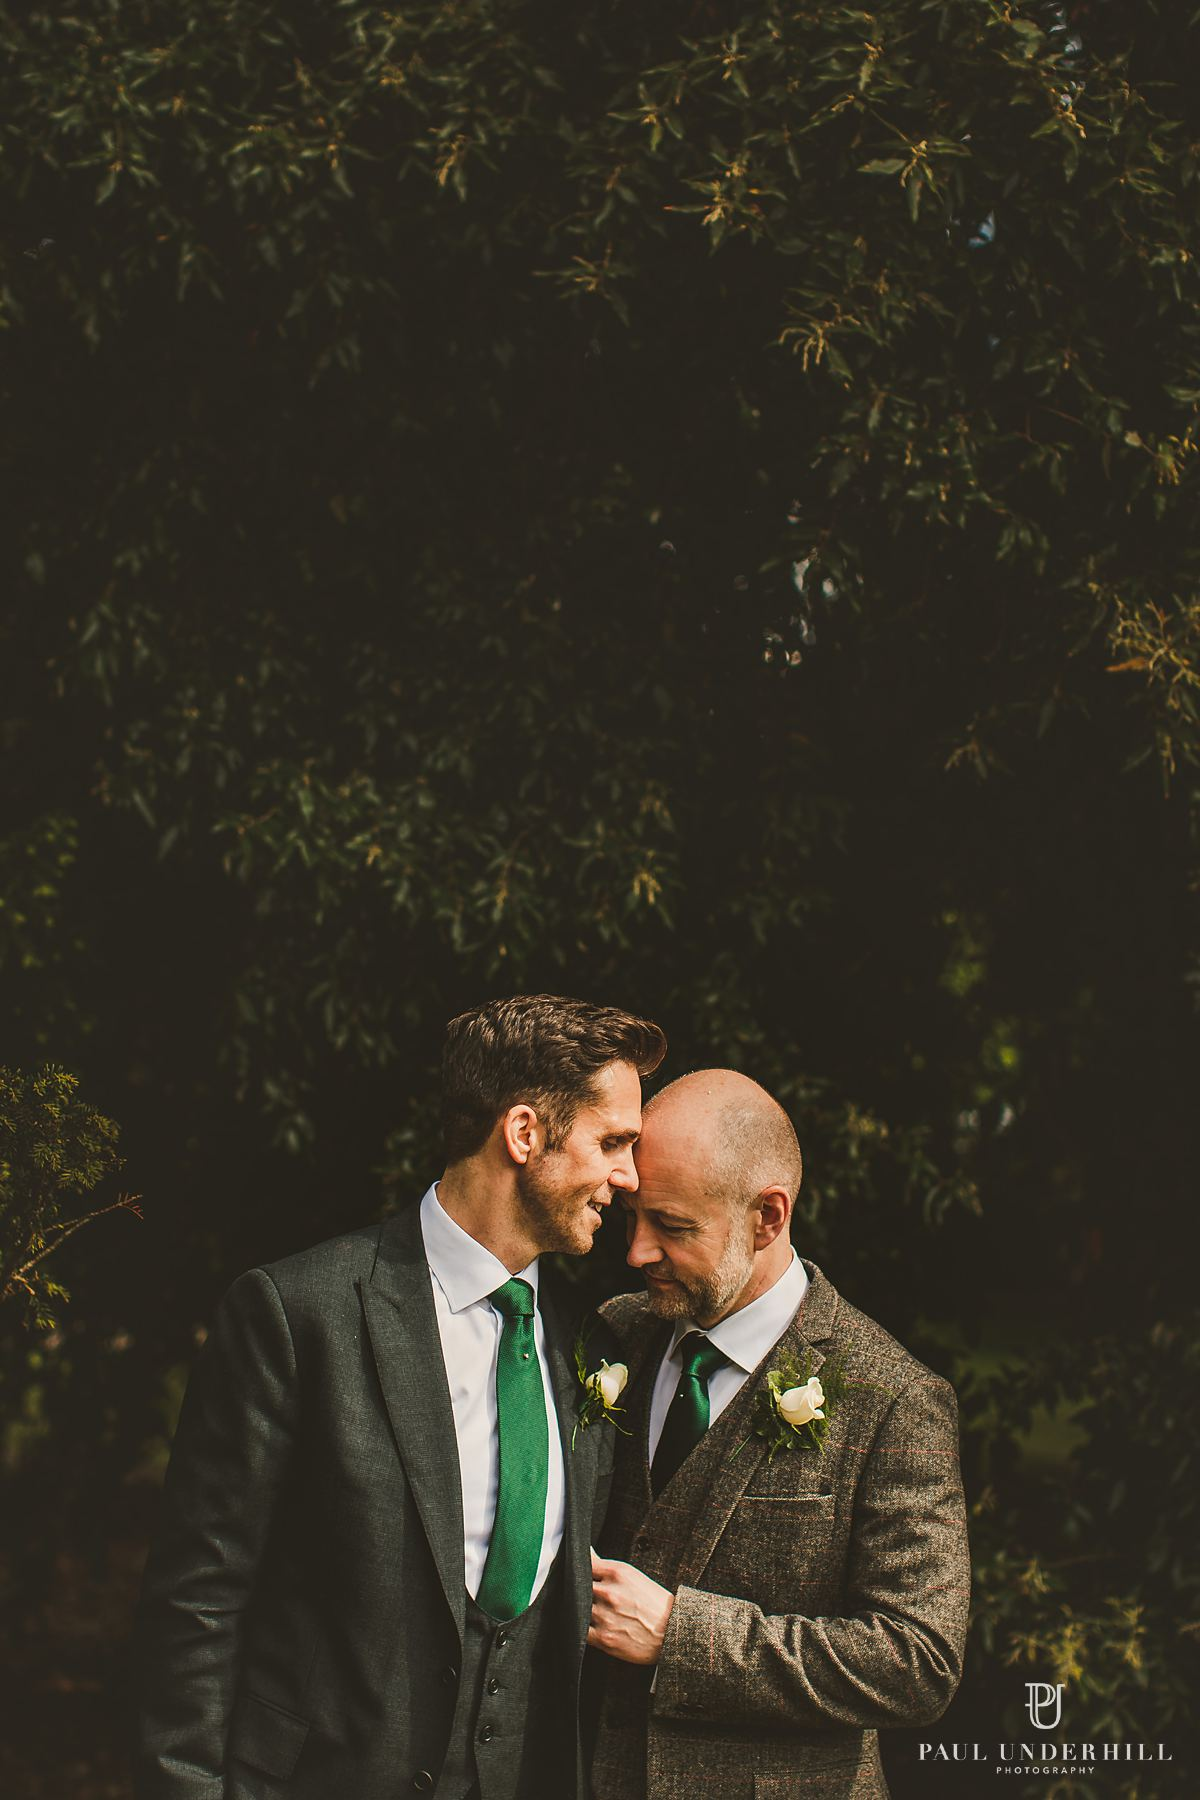 Portrait grooms gay wedding photography